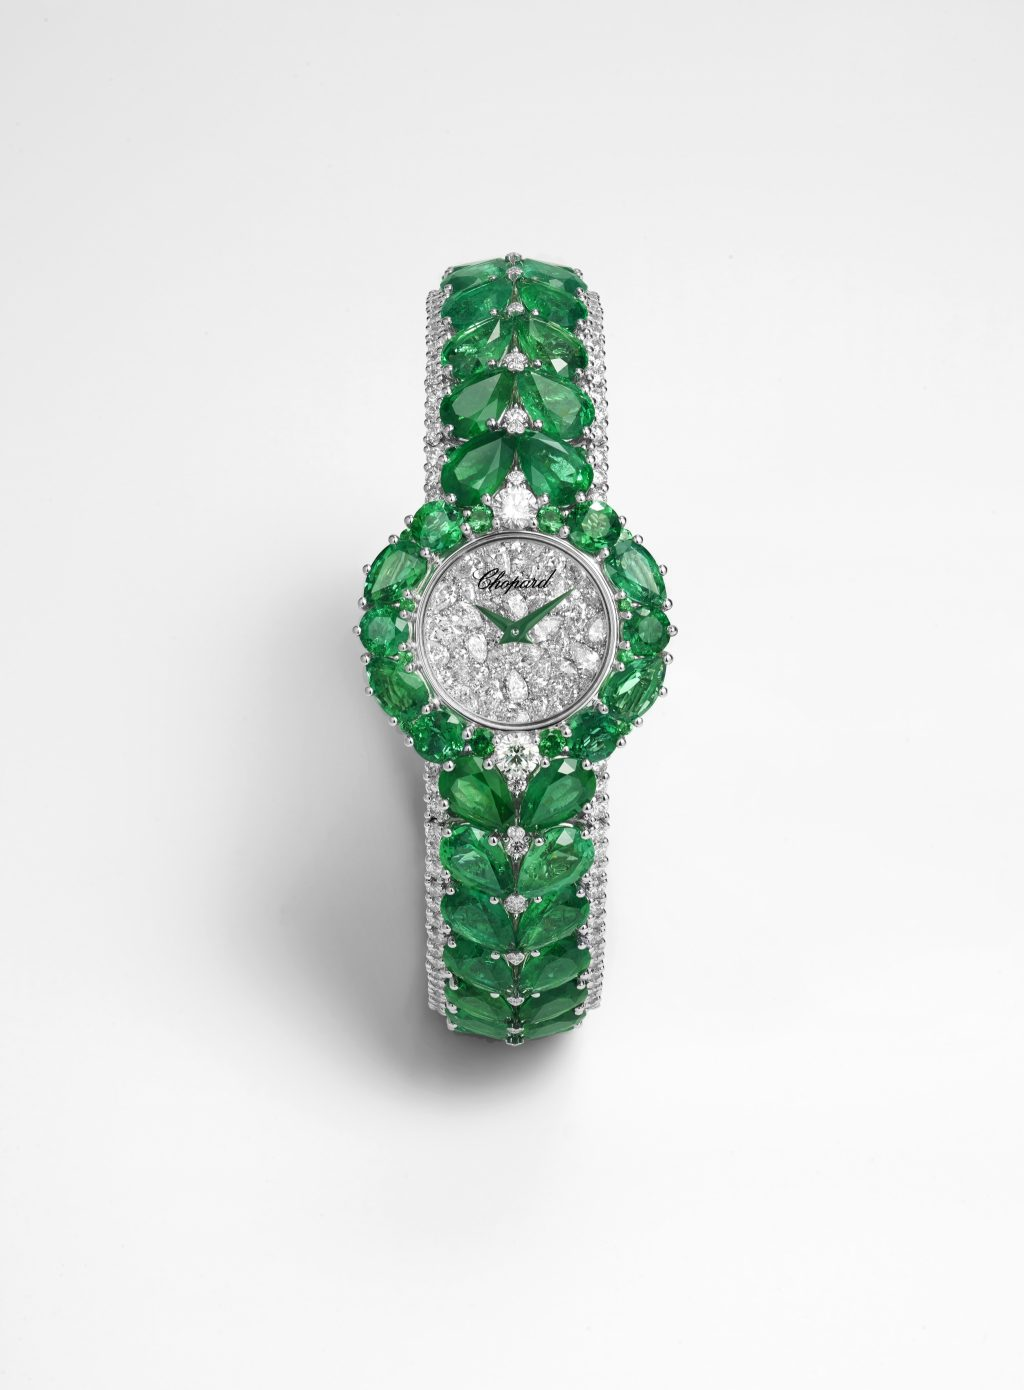 Chopard 'Esperanza' watch